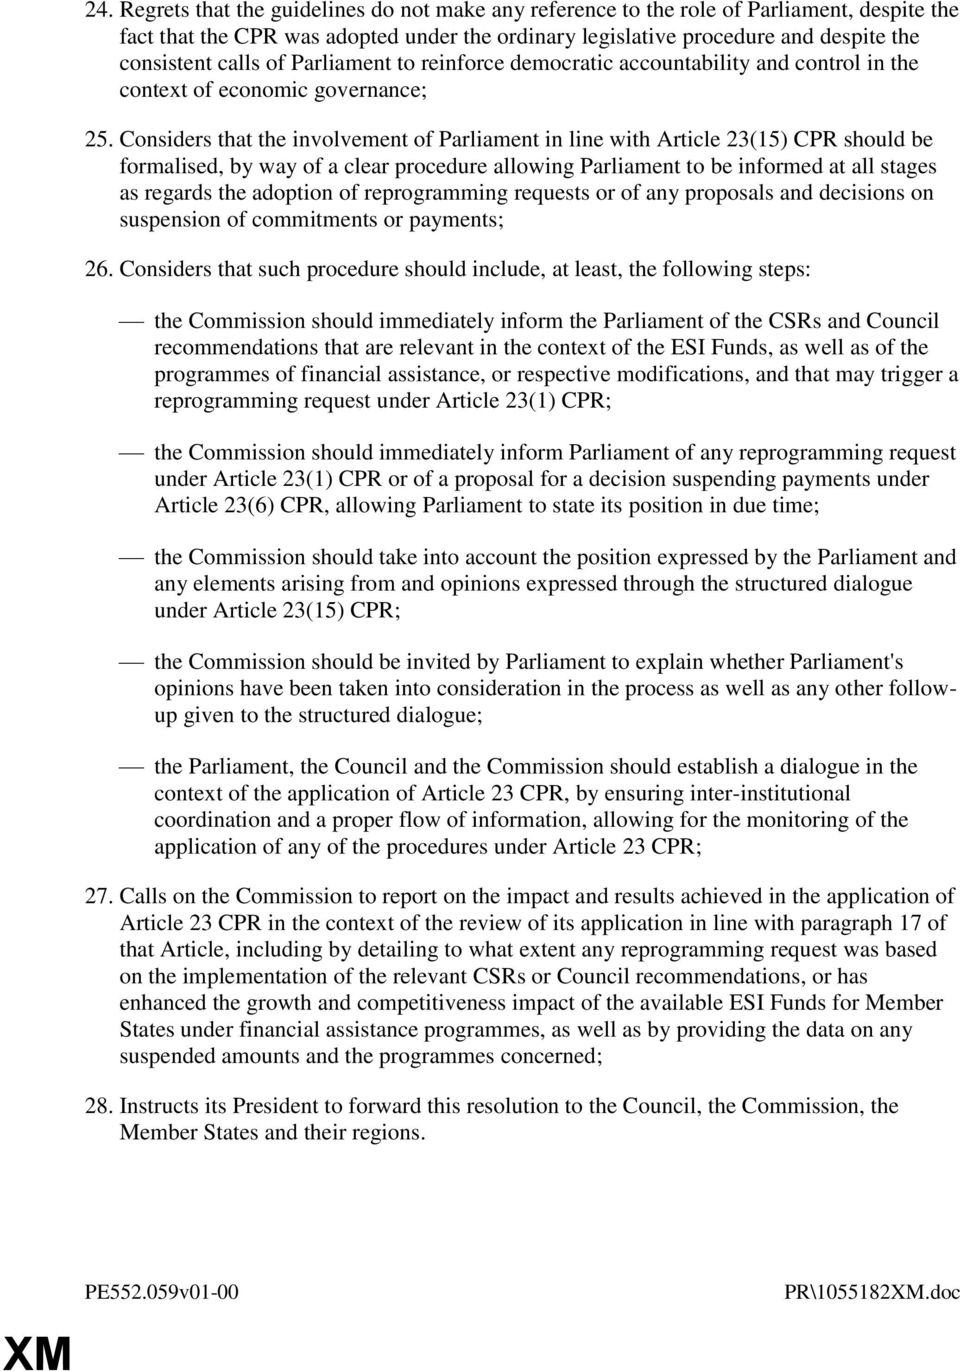 Considers that the involvement of Parliament in line with Article 23(15) CPR should be formalised, by way of a clear procedure allowing Parliament to be informed at all stages as regards the adoption